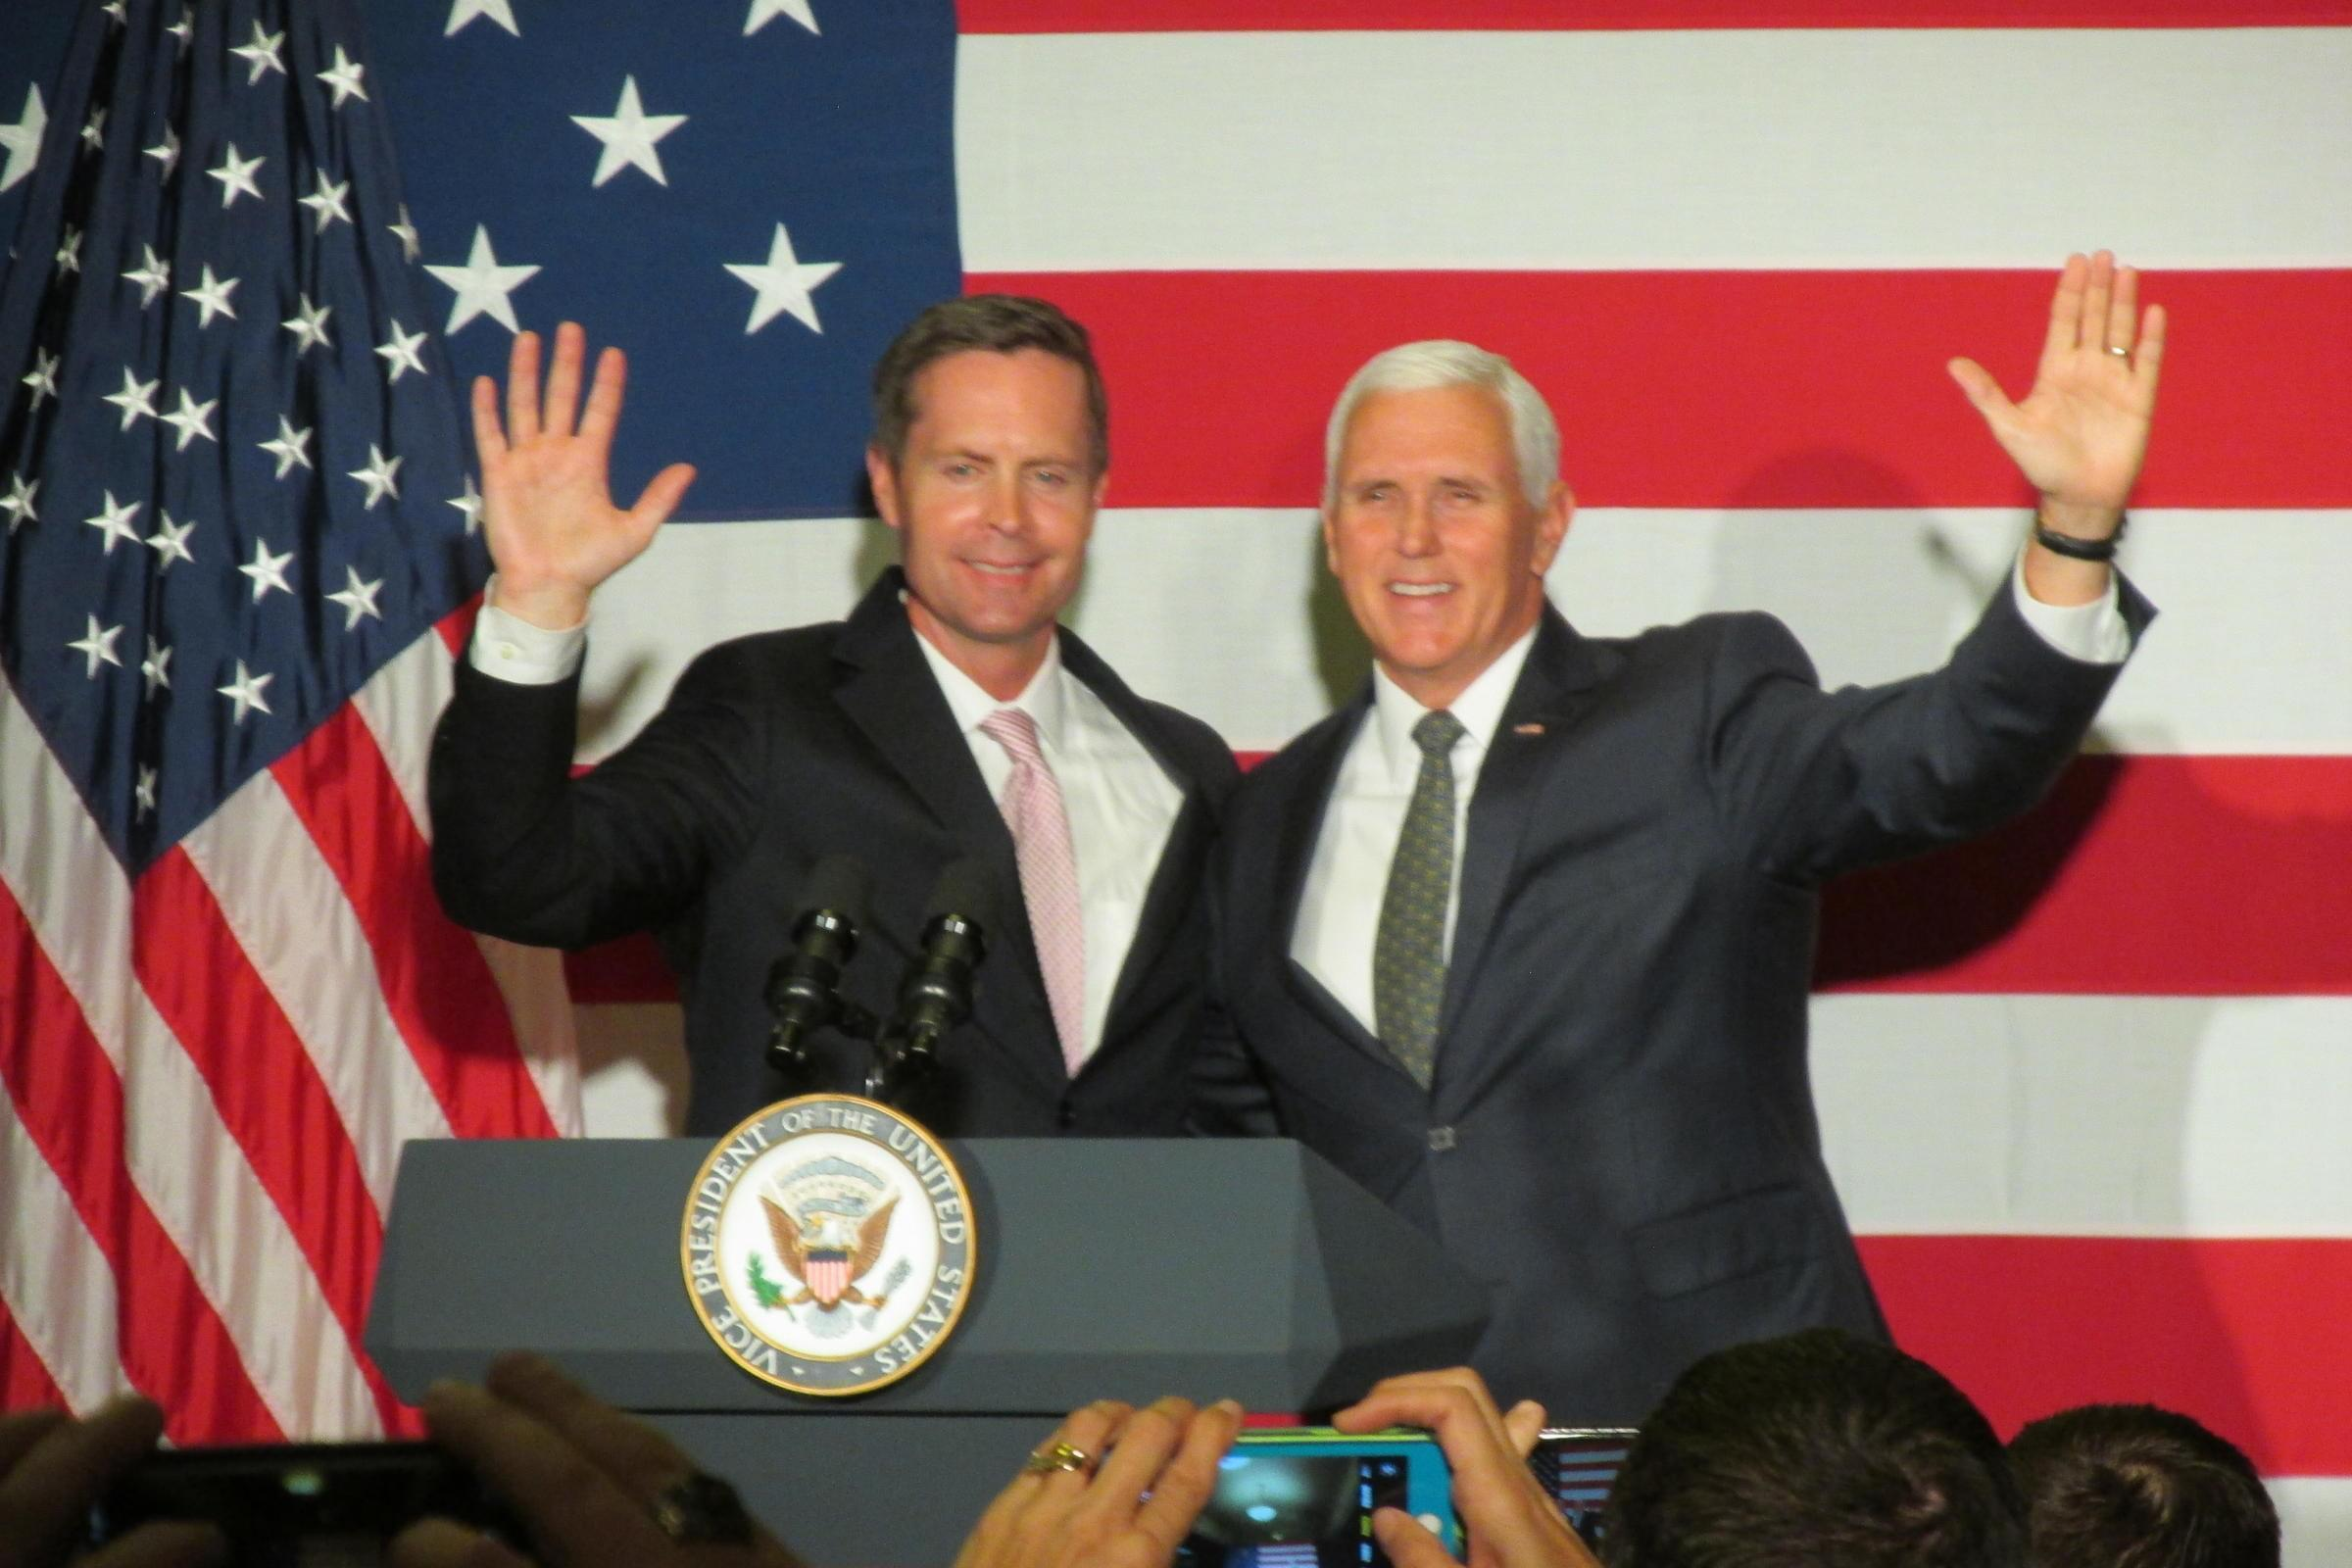 Congressman Rodney Davis, left, greets supporters alongside Vice President Mike Pence at a fundraiser in Springfield on Oct. 12.